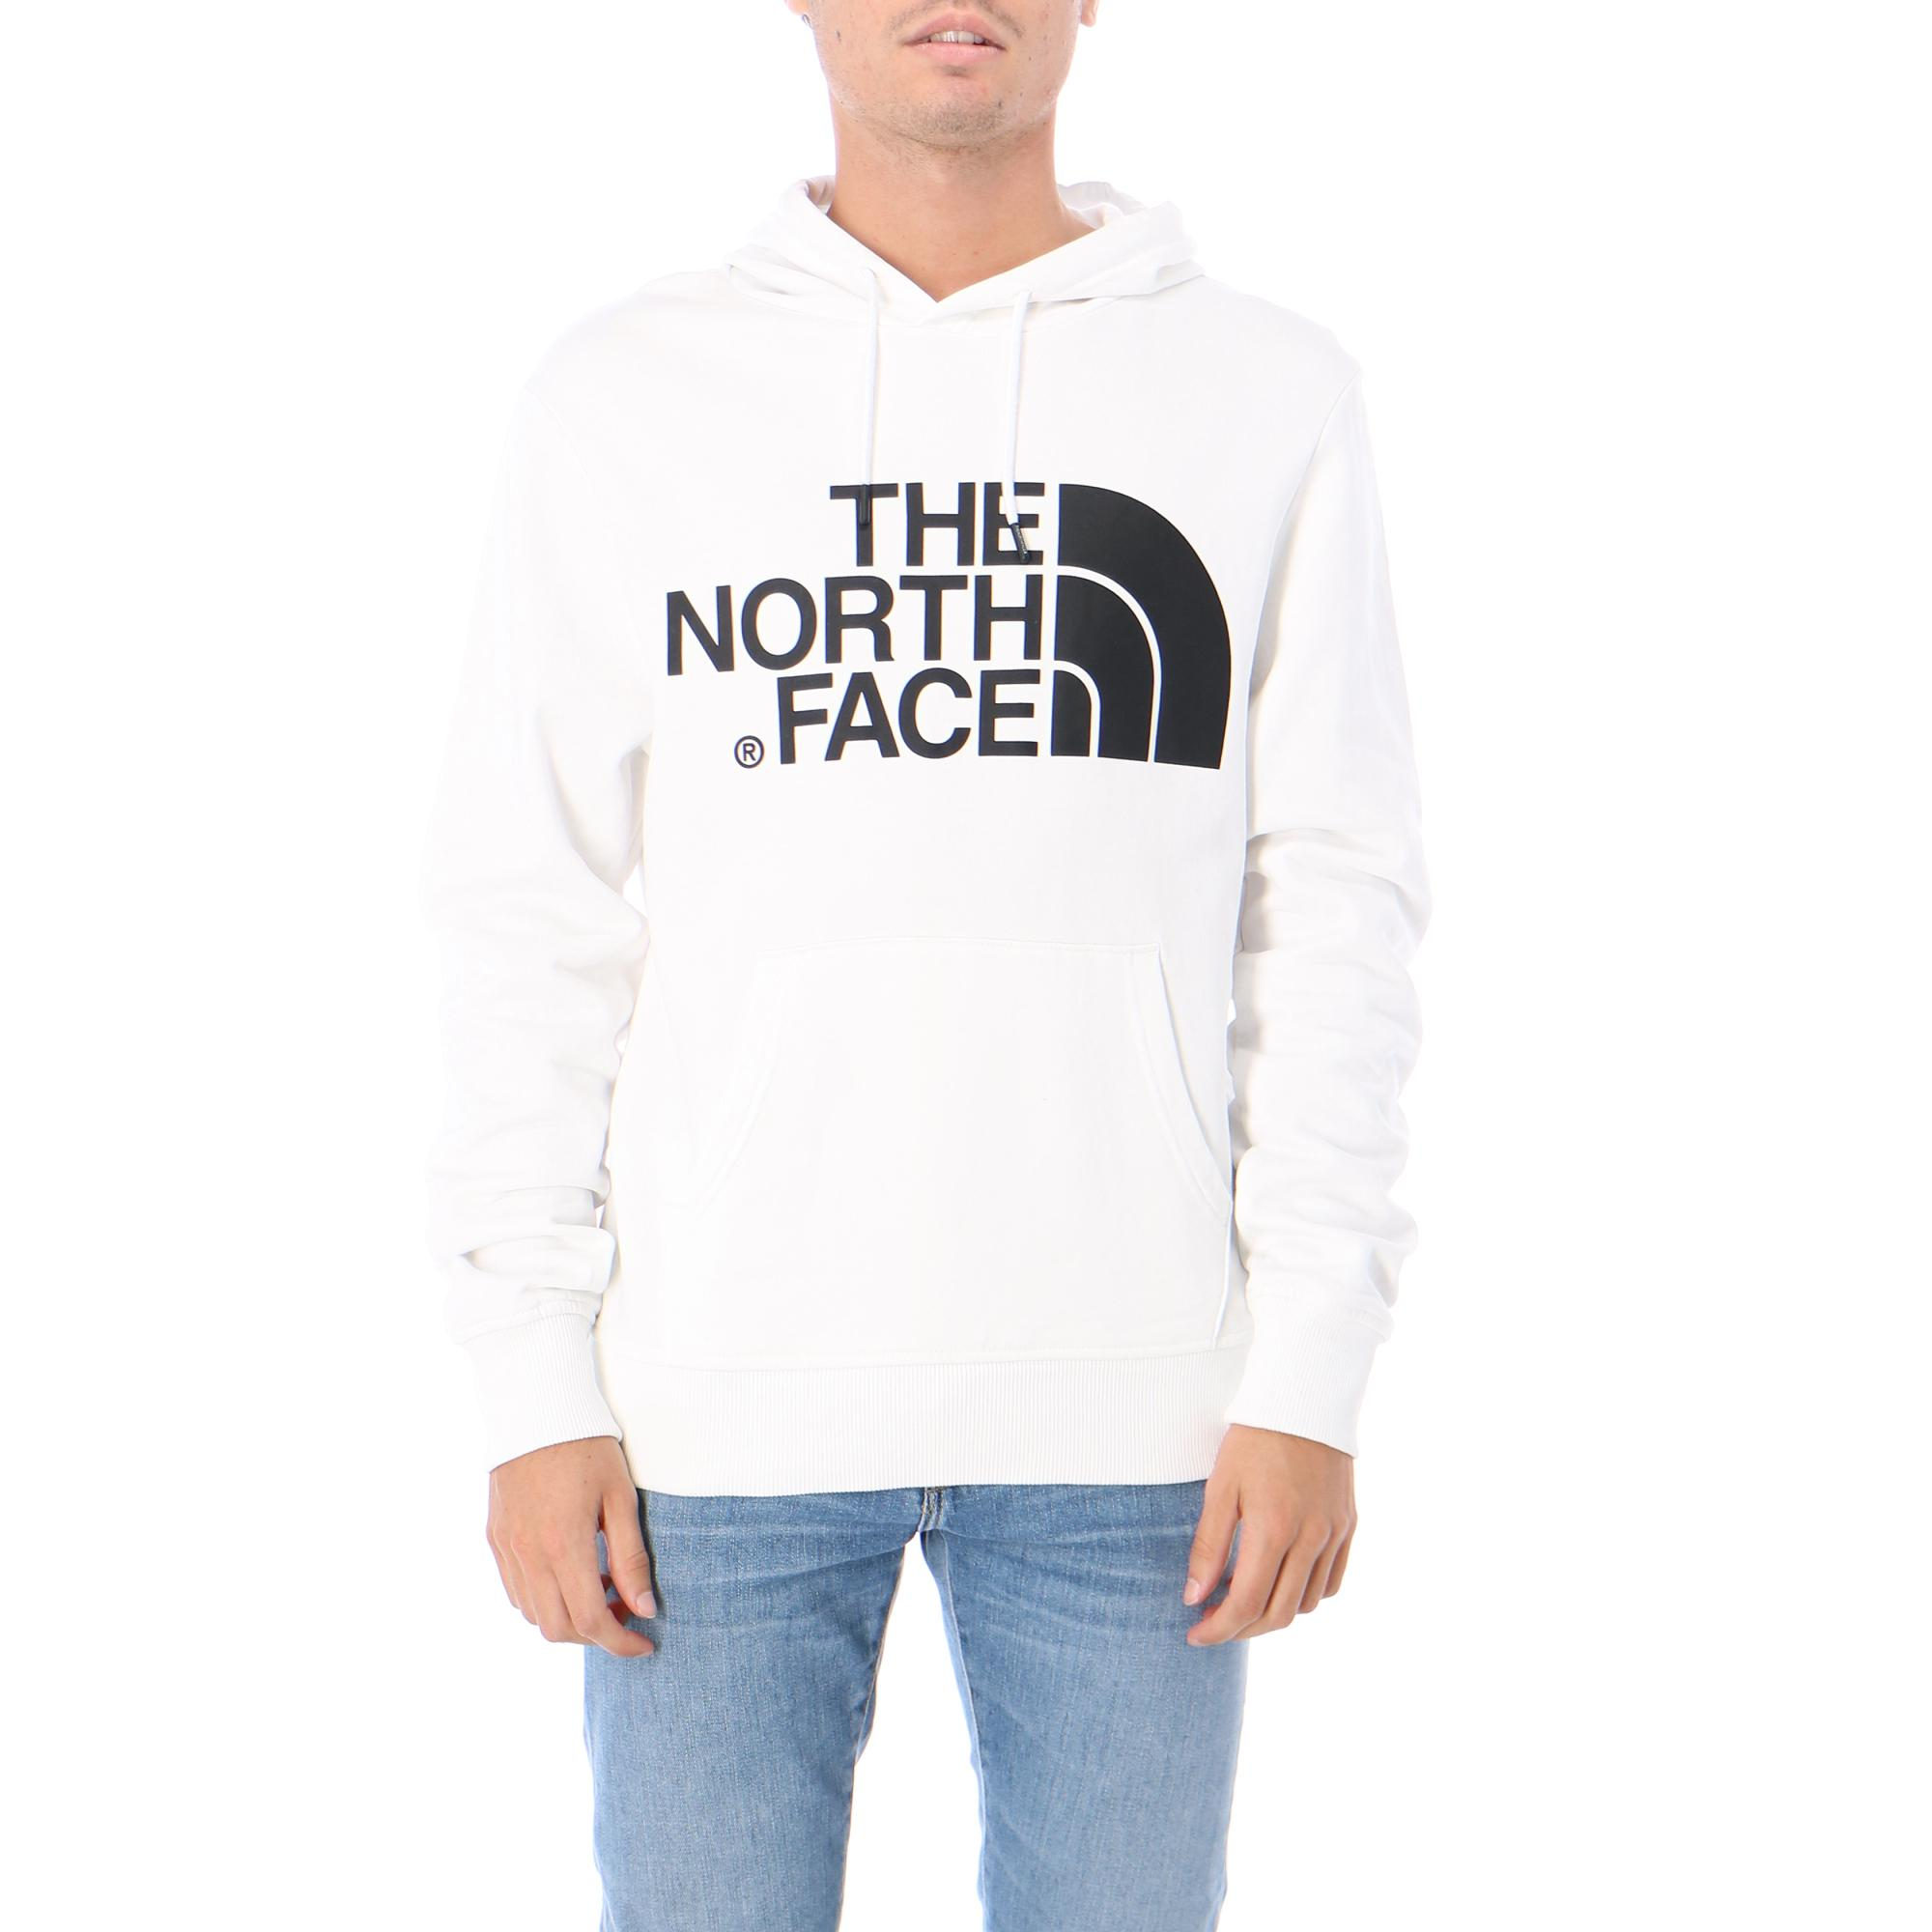 multiple colors meet factory outlets THE NORTH FACE STANDARD HOODIE